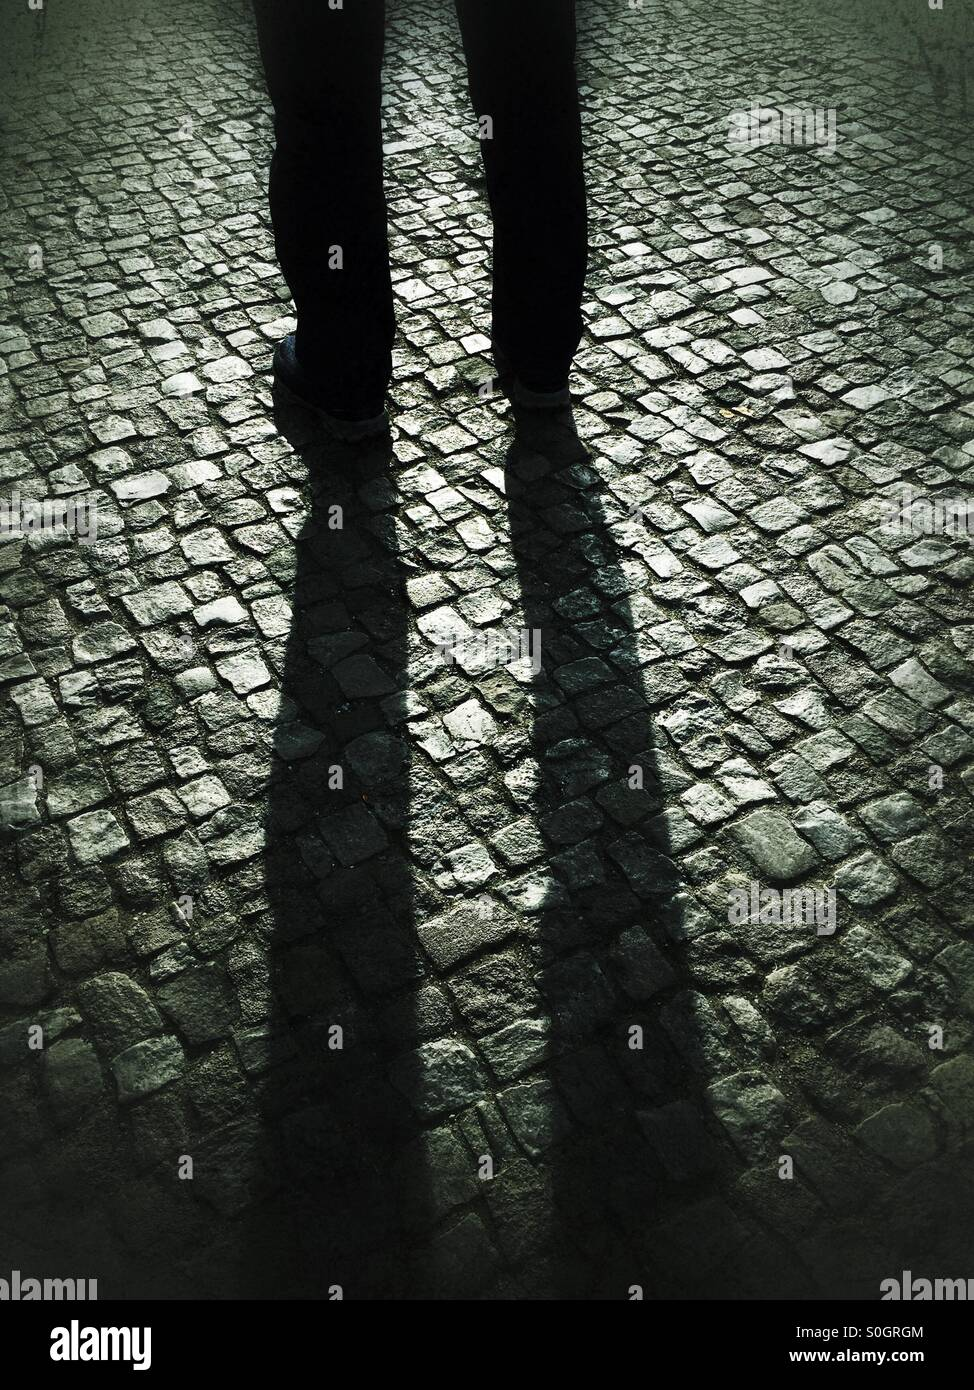 Man standing on cobbled road - Stock Image